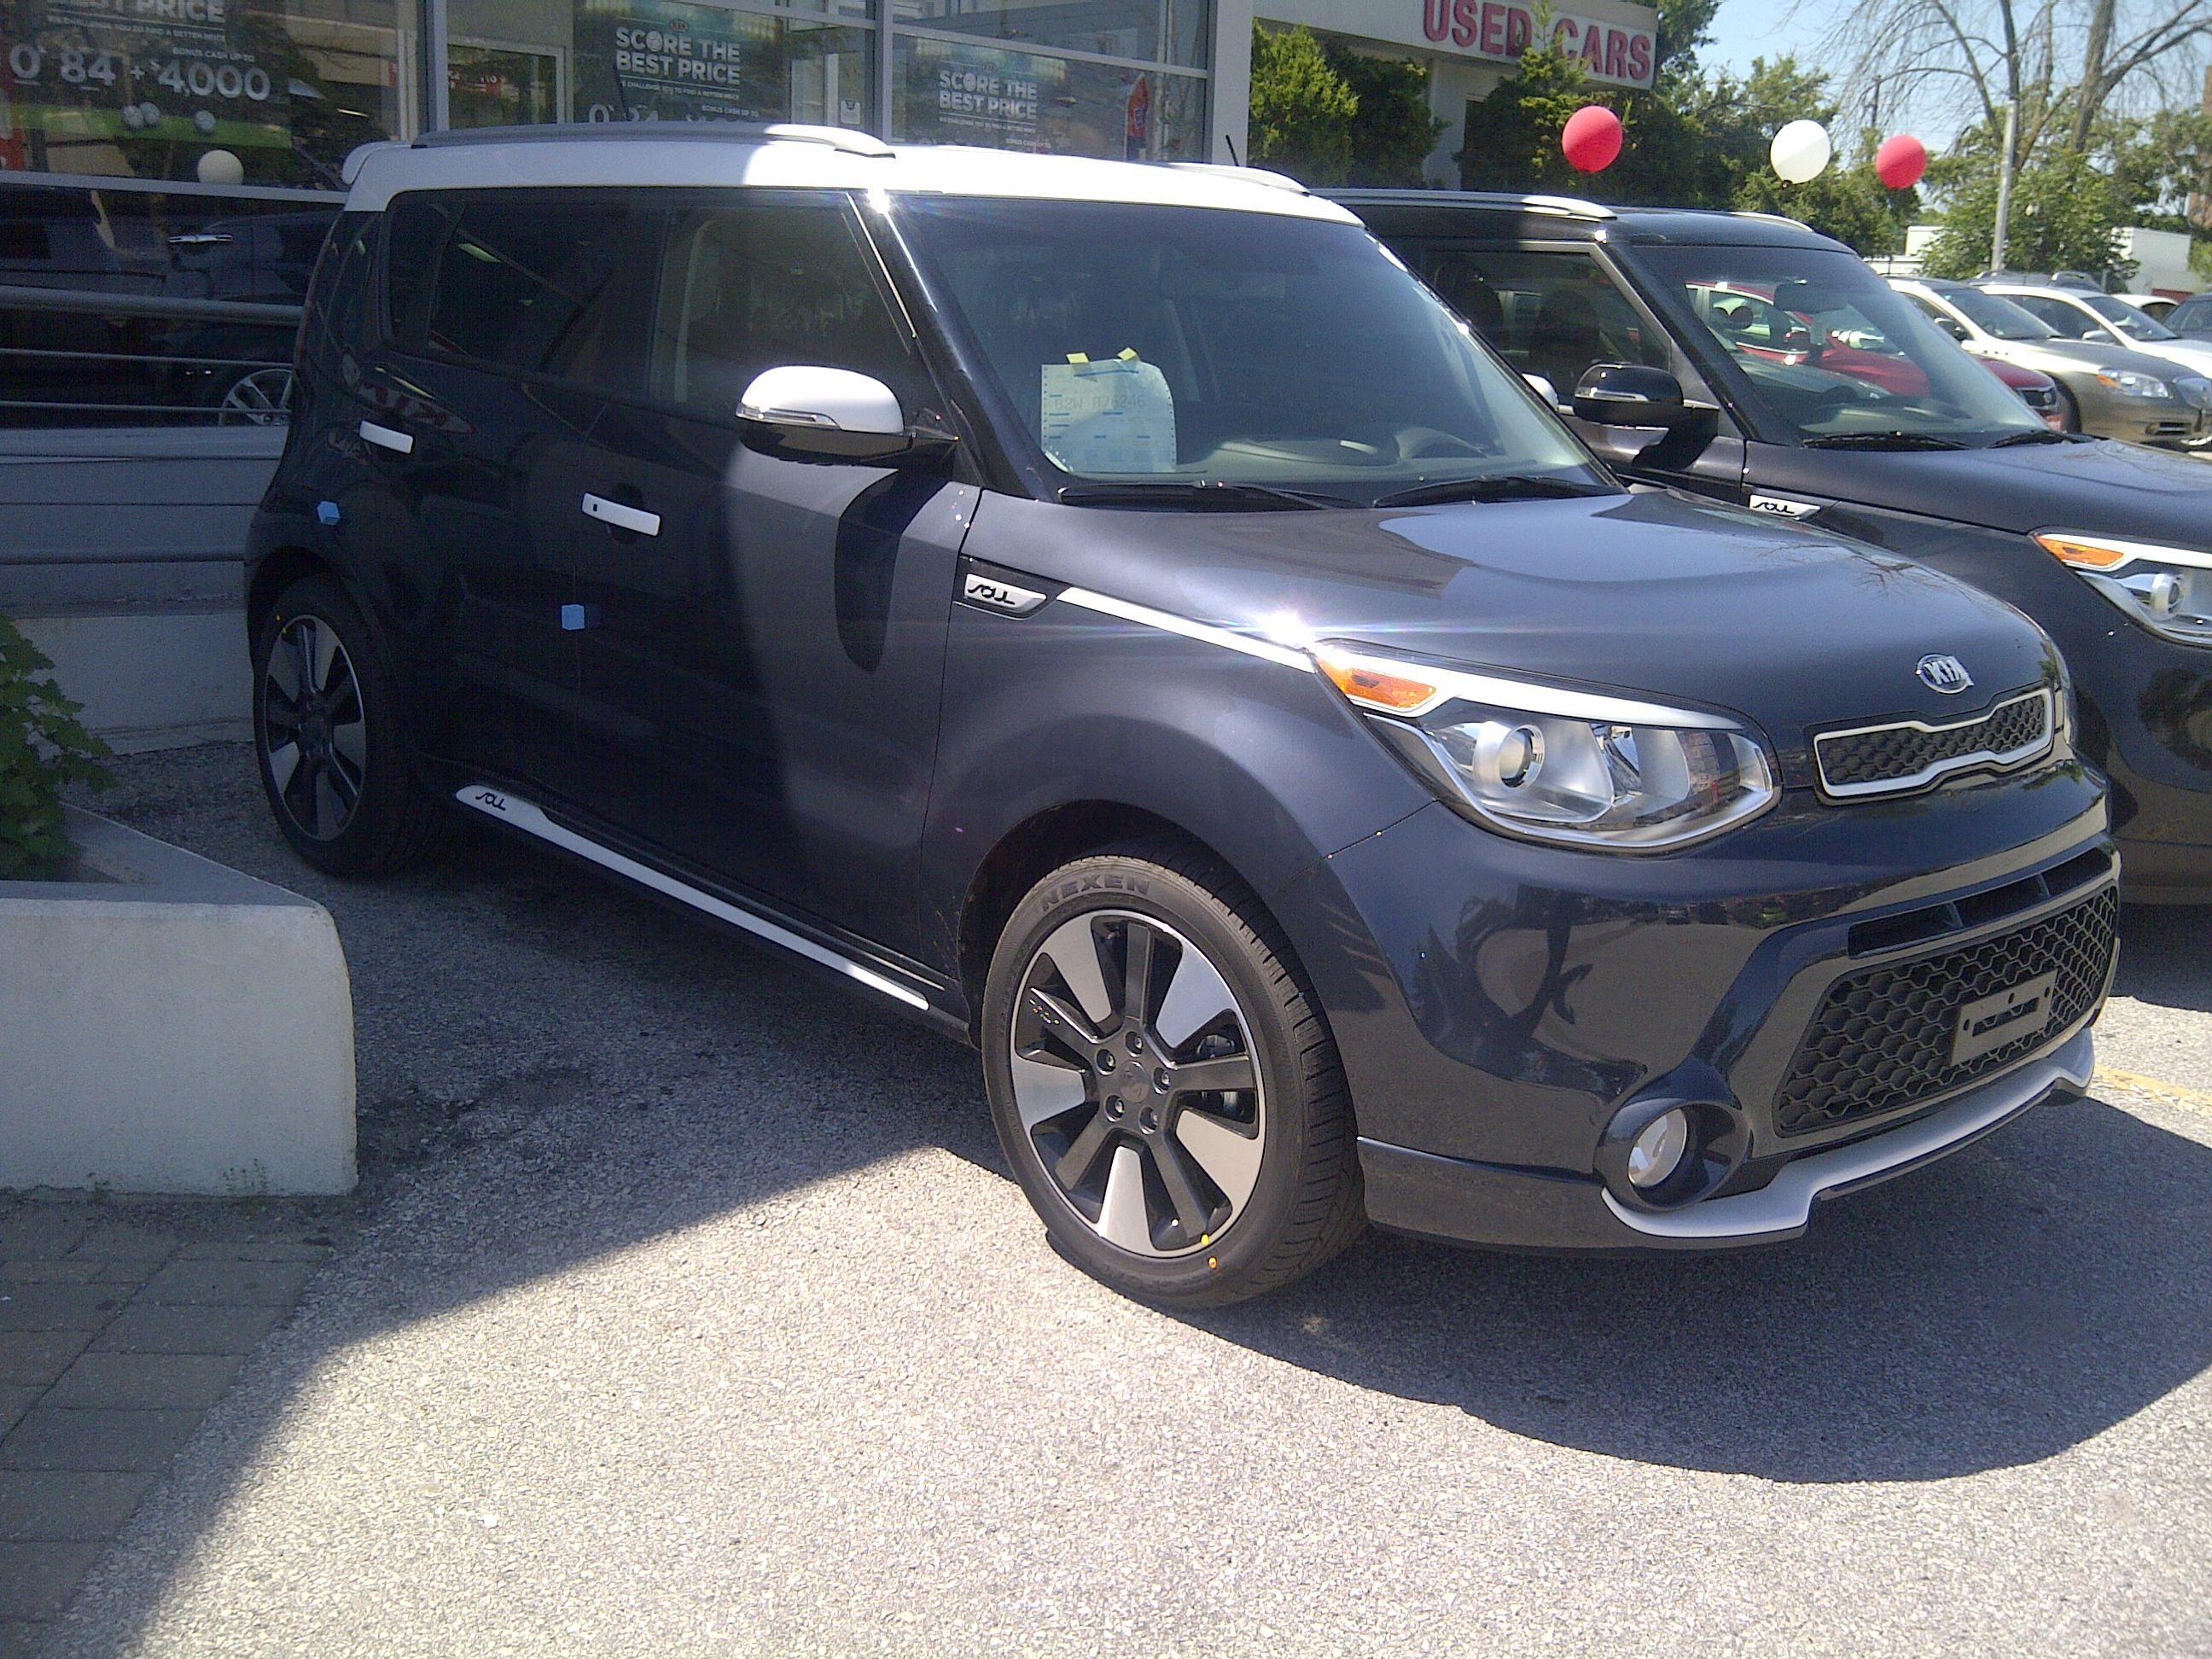 Only 250 made for canada special edition soul sx in fathom blue with white trim now available at foster kia in scarborough pinterest kia soul